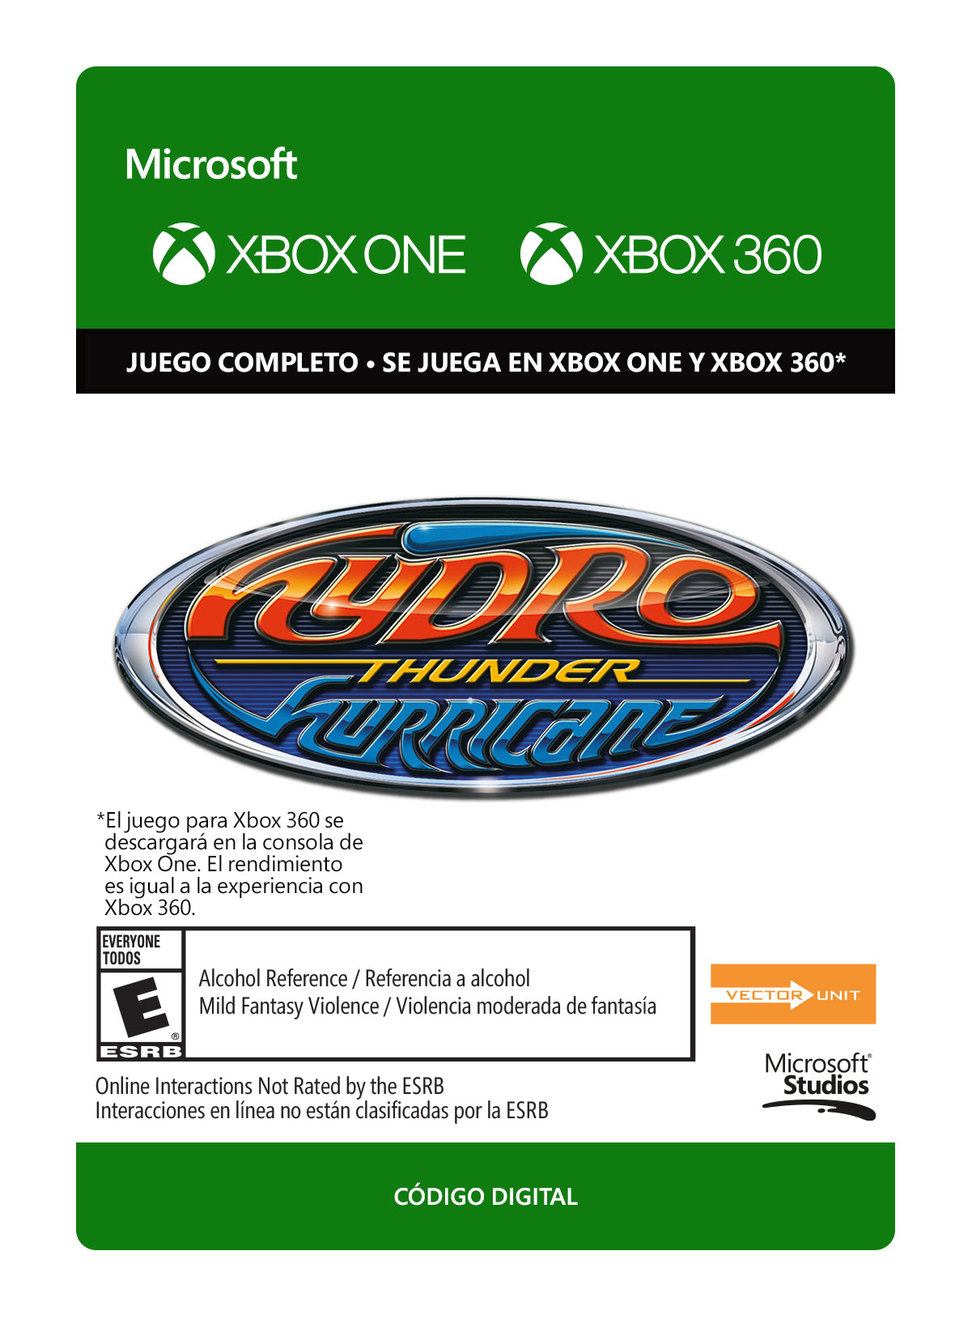 Hydro Thunder Hurricane - Xbox 360, Xbox One - Descarga - Esd